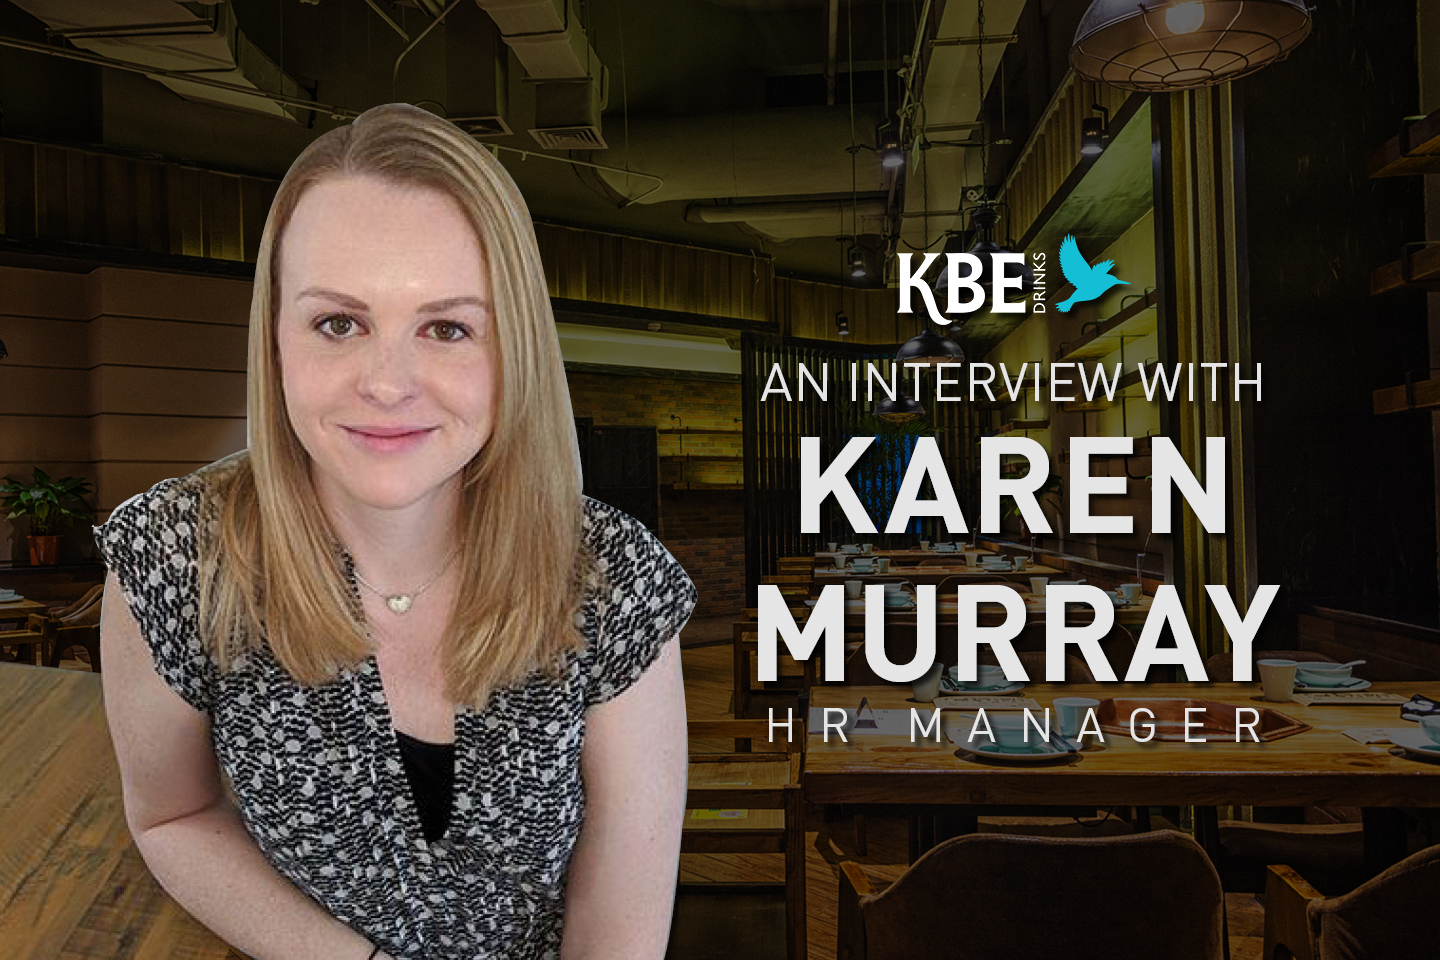 An interview with KBE Drinks' HR Manager, Karen Murray